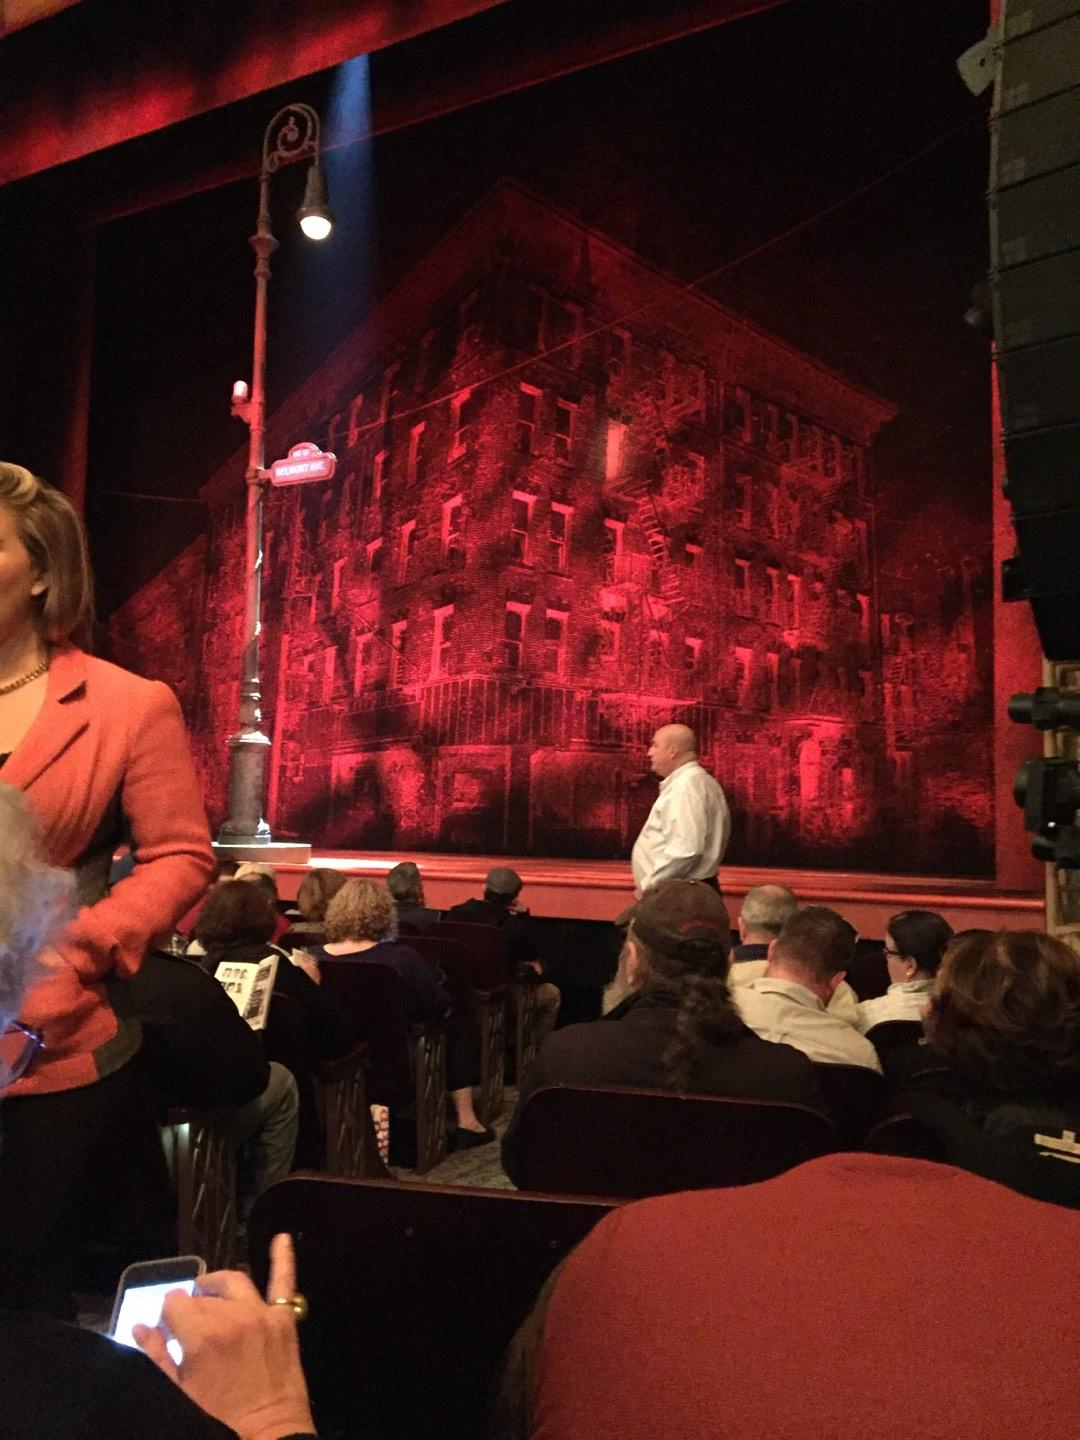 Longacre Theatre Section Orchestra Row G Seat 3